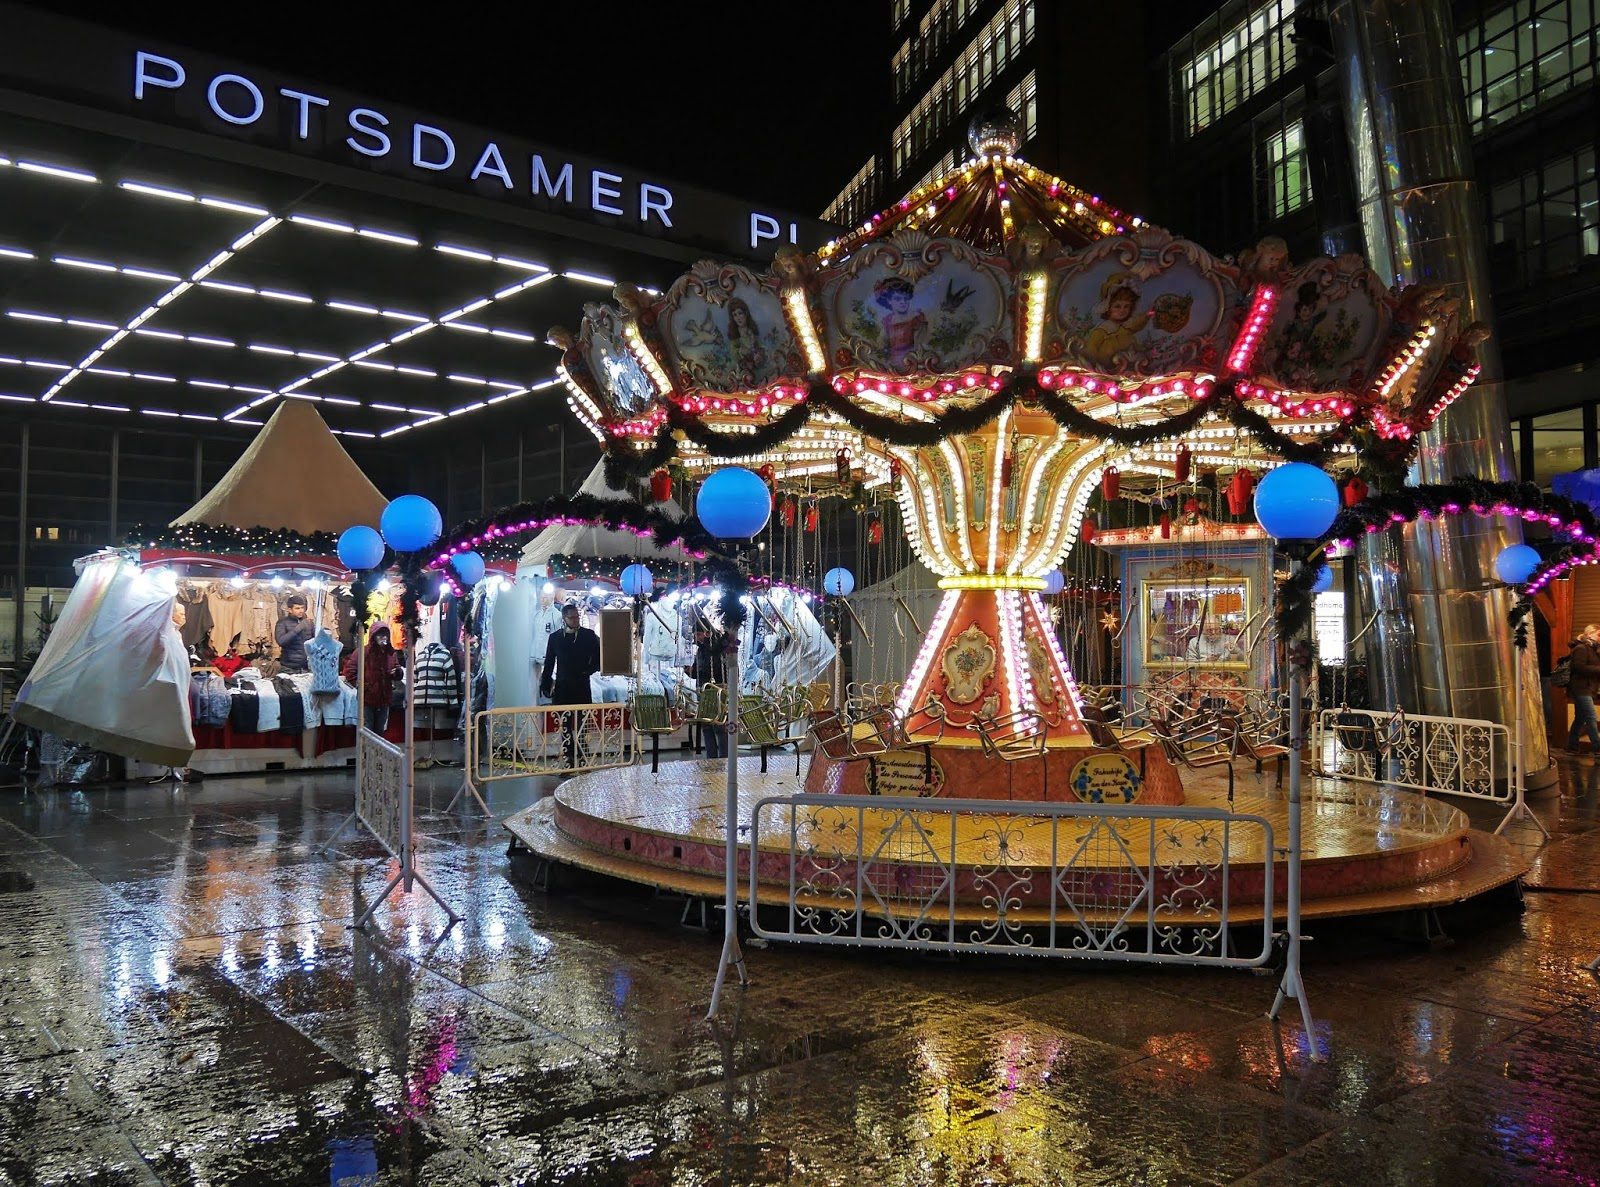 Potsdamer Platz Christmas Market at night, Berlin